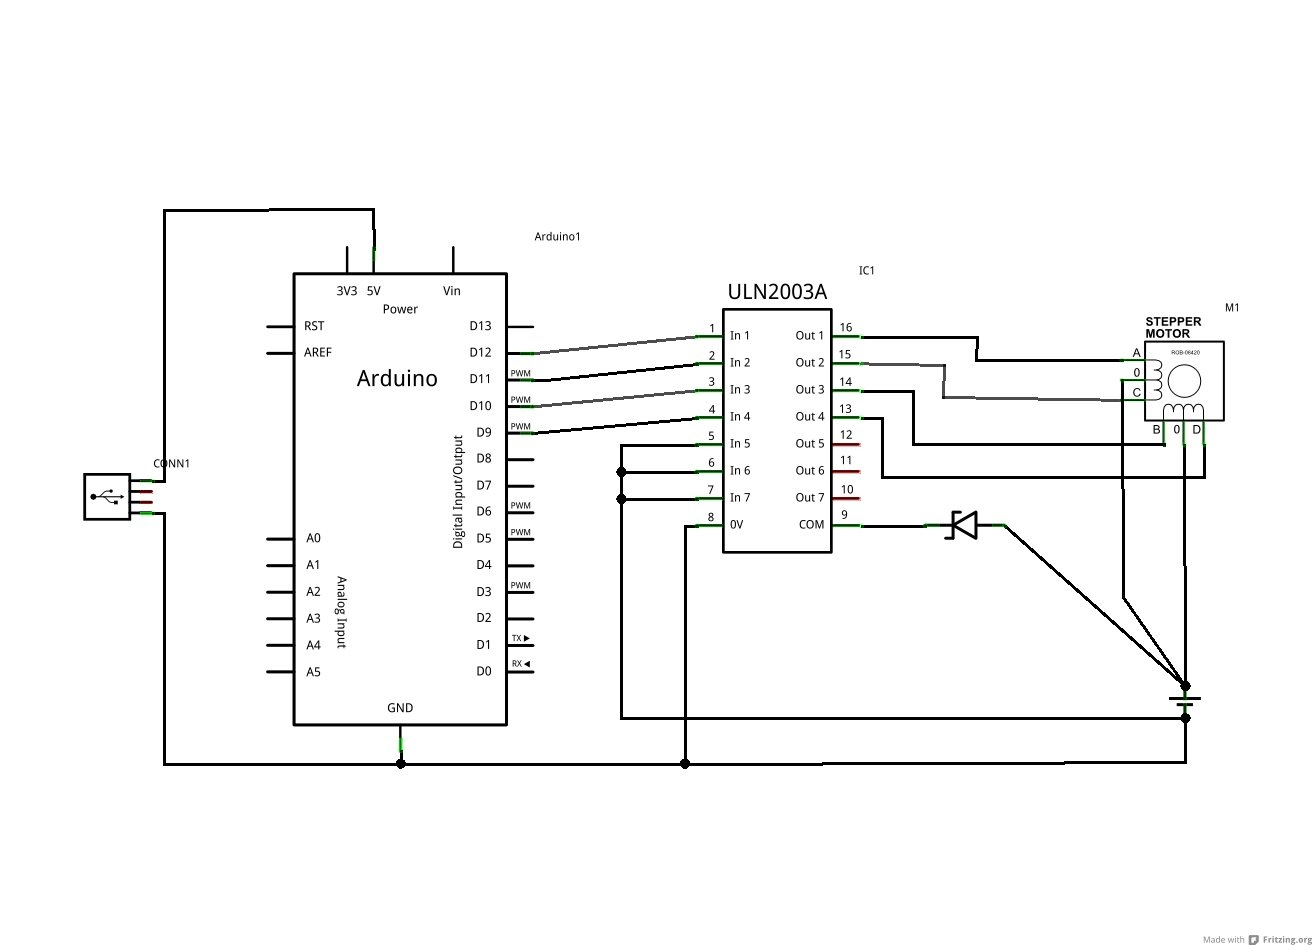 Exclusive 5 Wire Motor Wiring Diagram | Circuitwiringdiagram - 5 Wire Motor Wiring Diagram